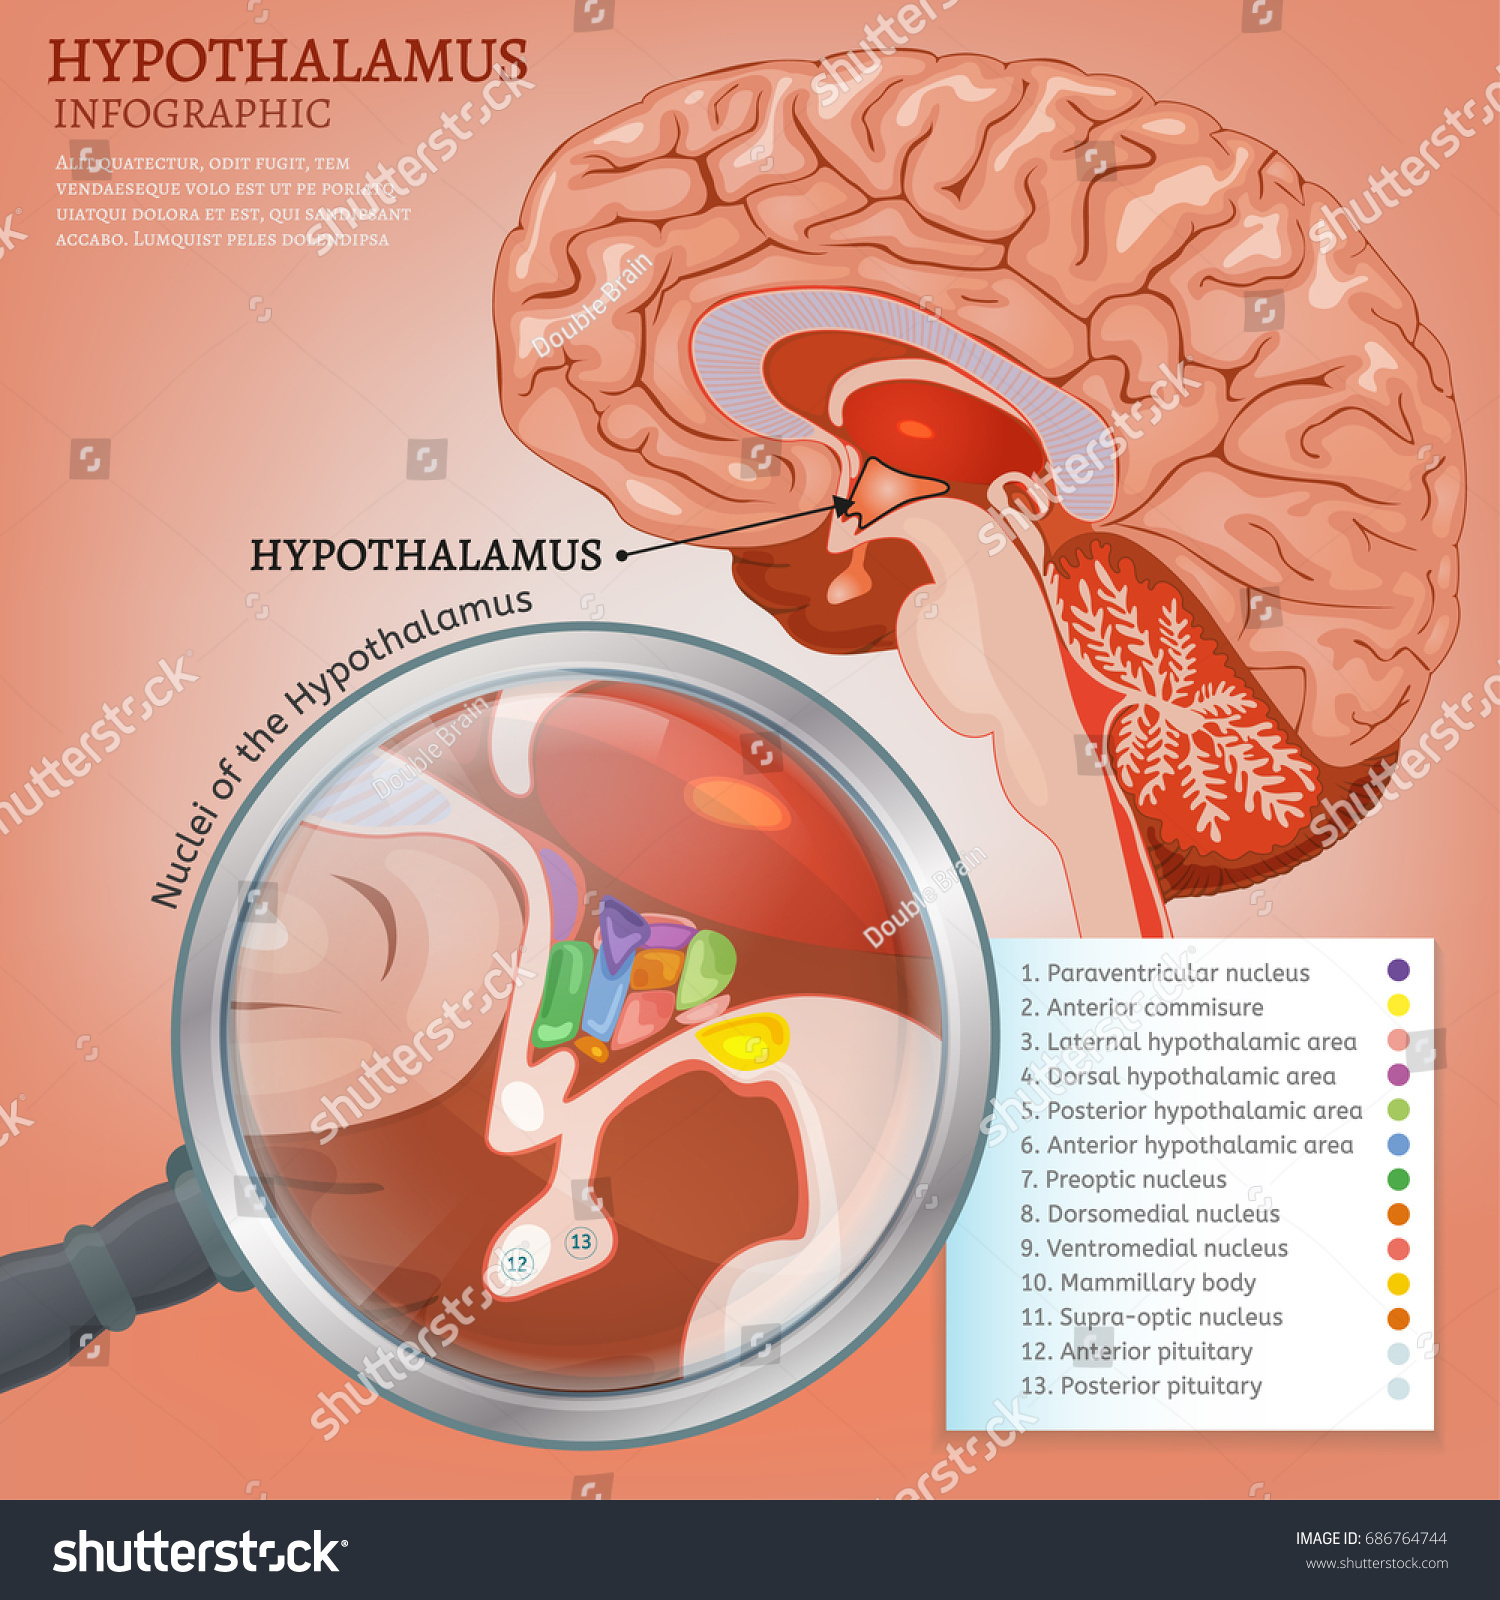 Hypothalamus Infographic Image Detailed Anatomy Human Stock Vector